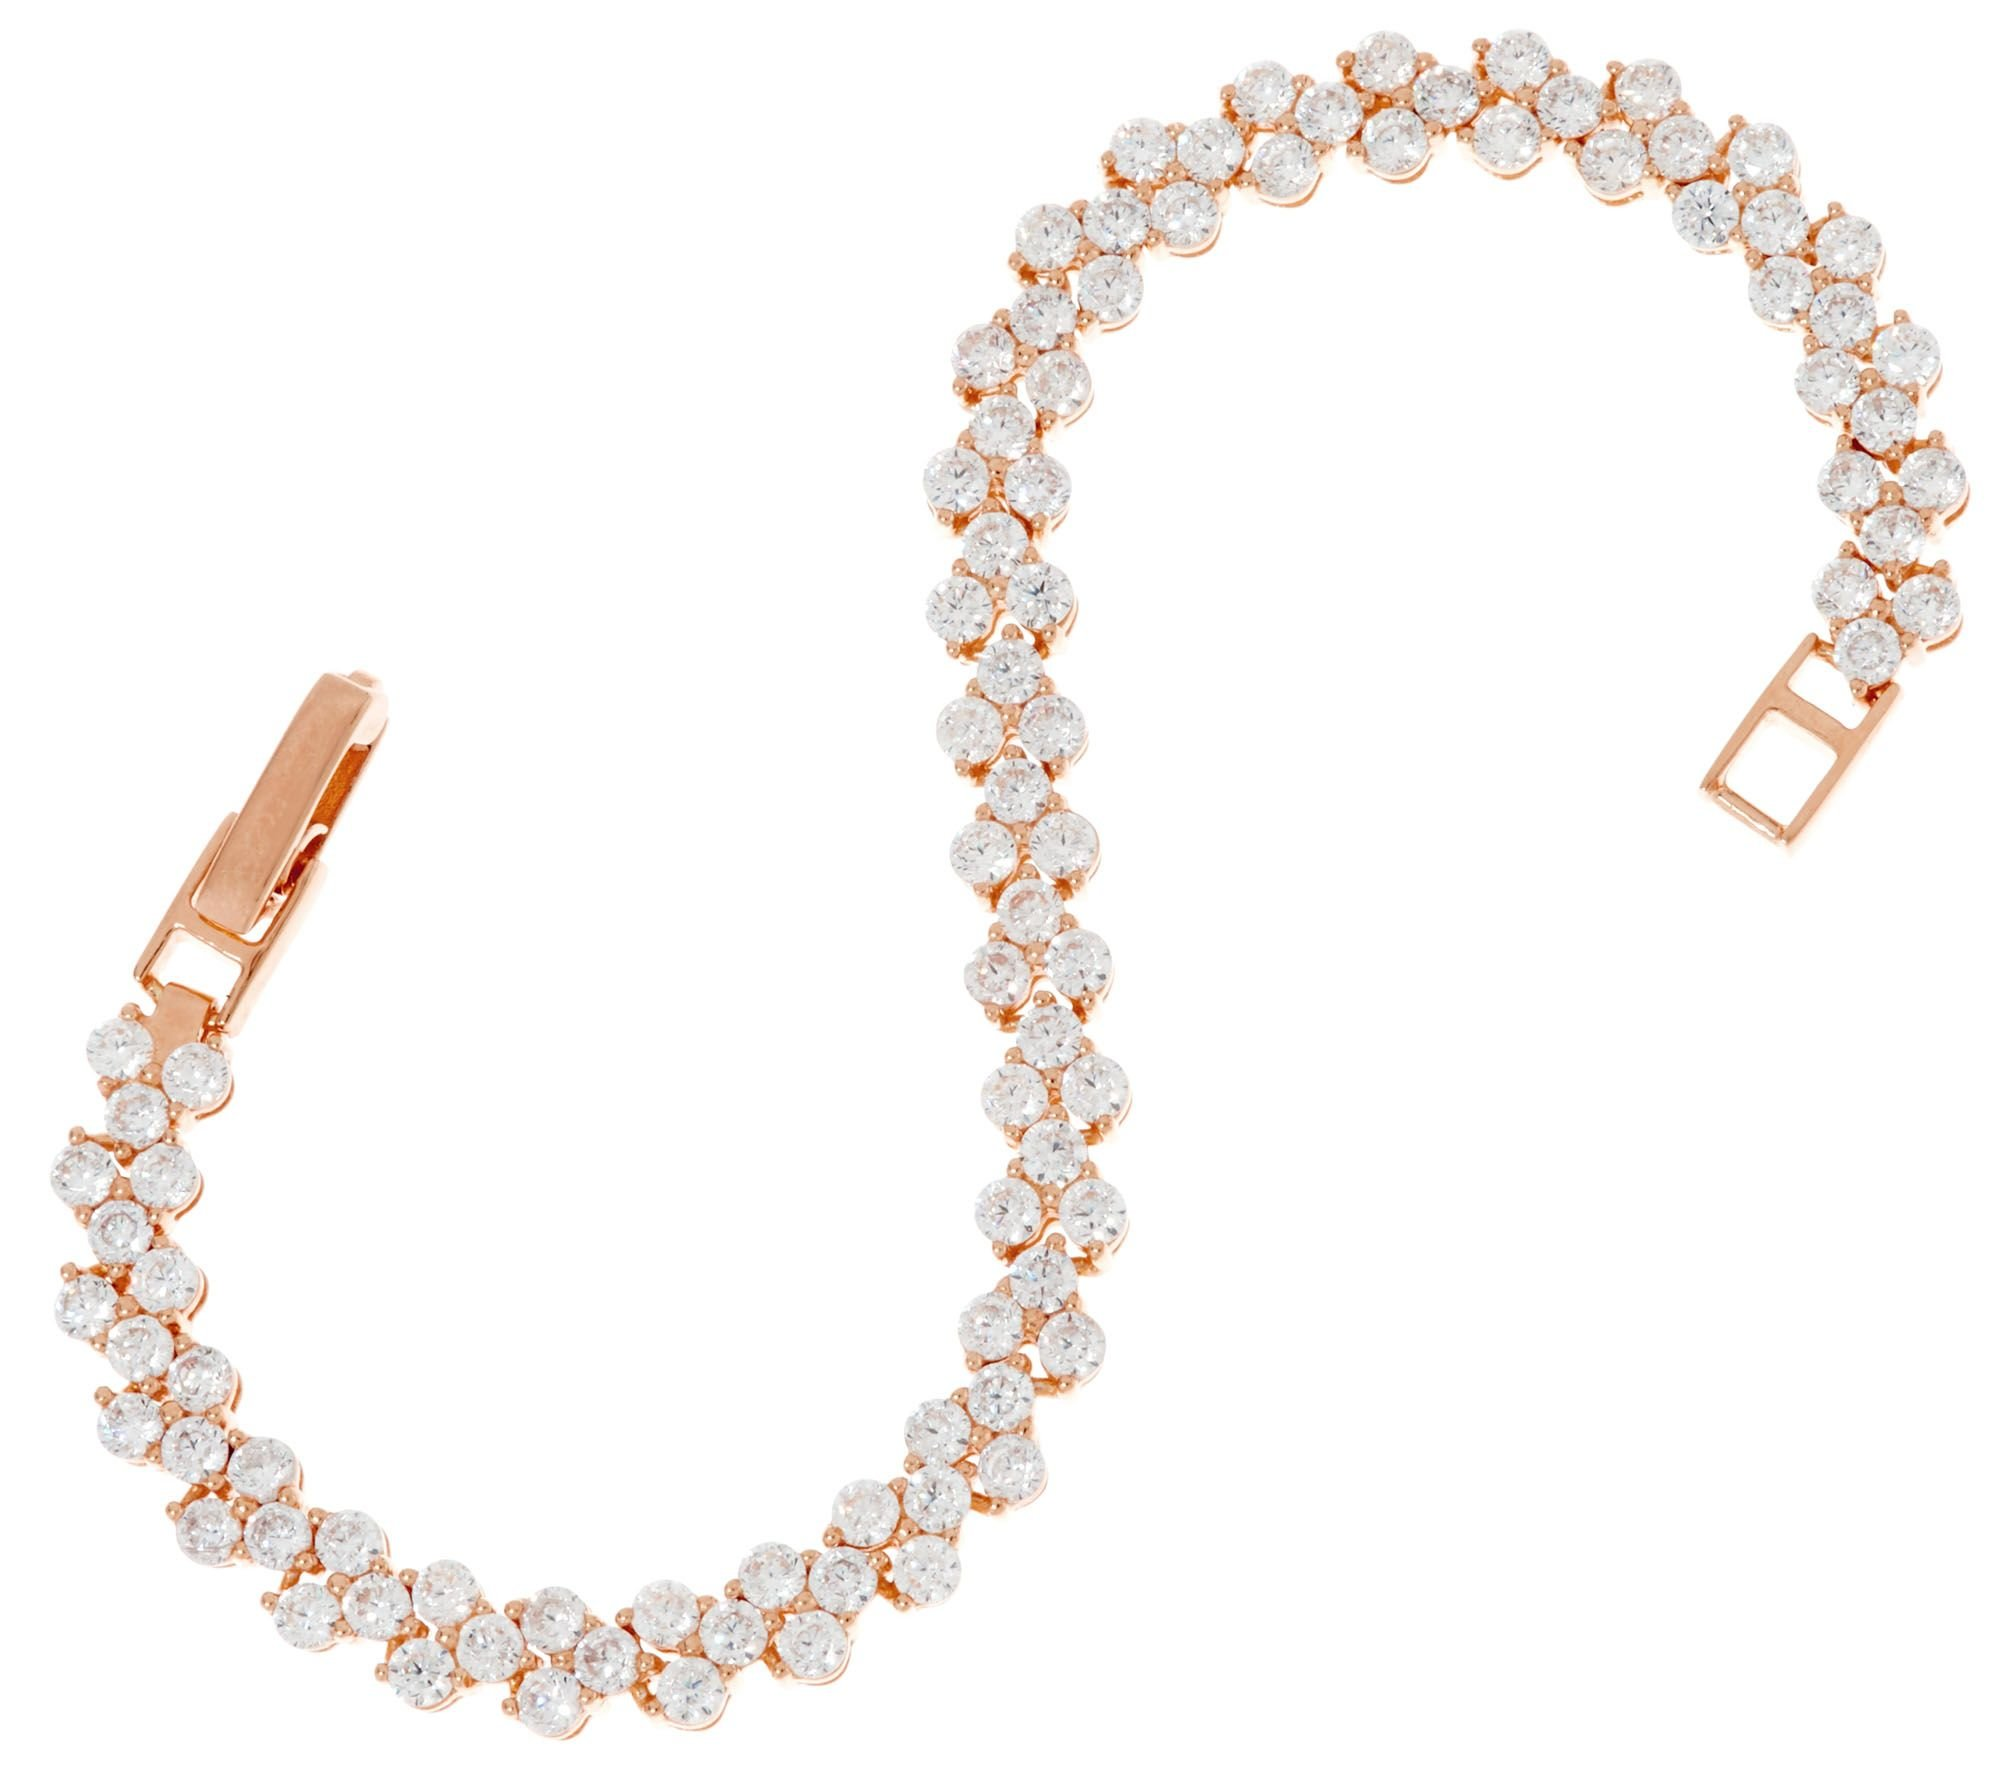 Smjewels 4.95 cttw Round Cut D/VVS1 Diamond 14K Rose Gold Plated Tennis Bracelet by Smjewels